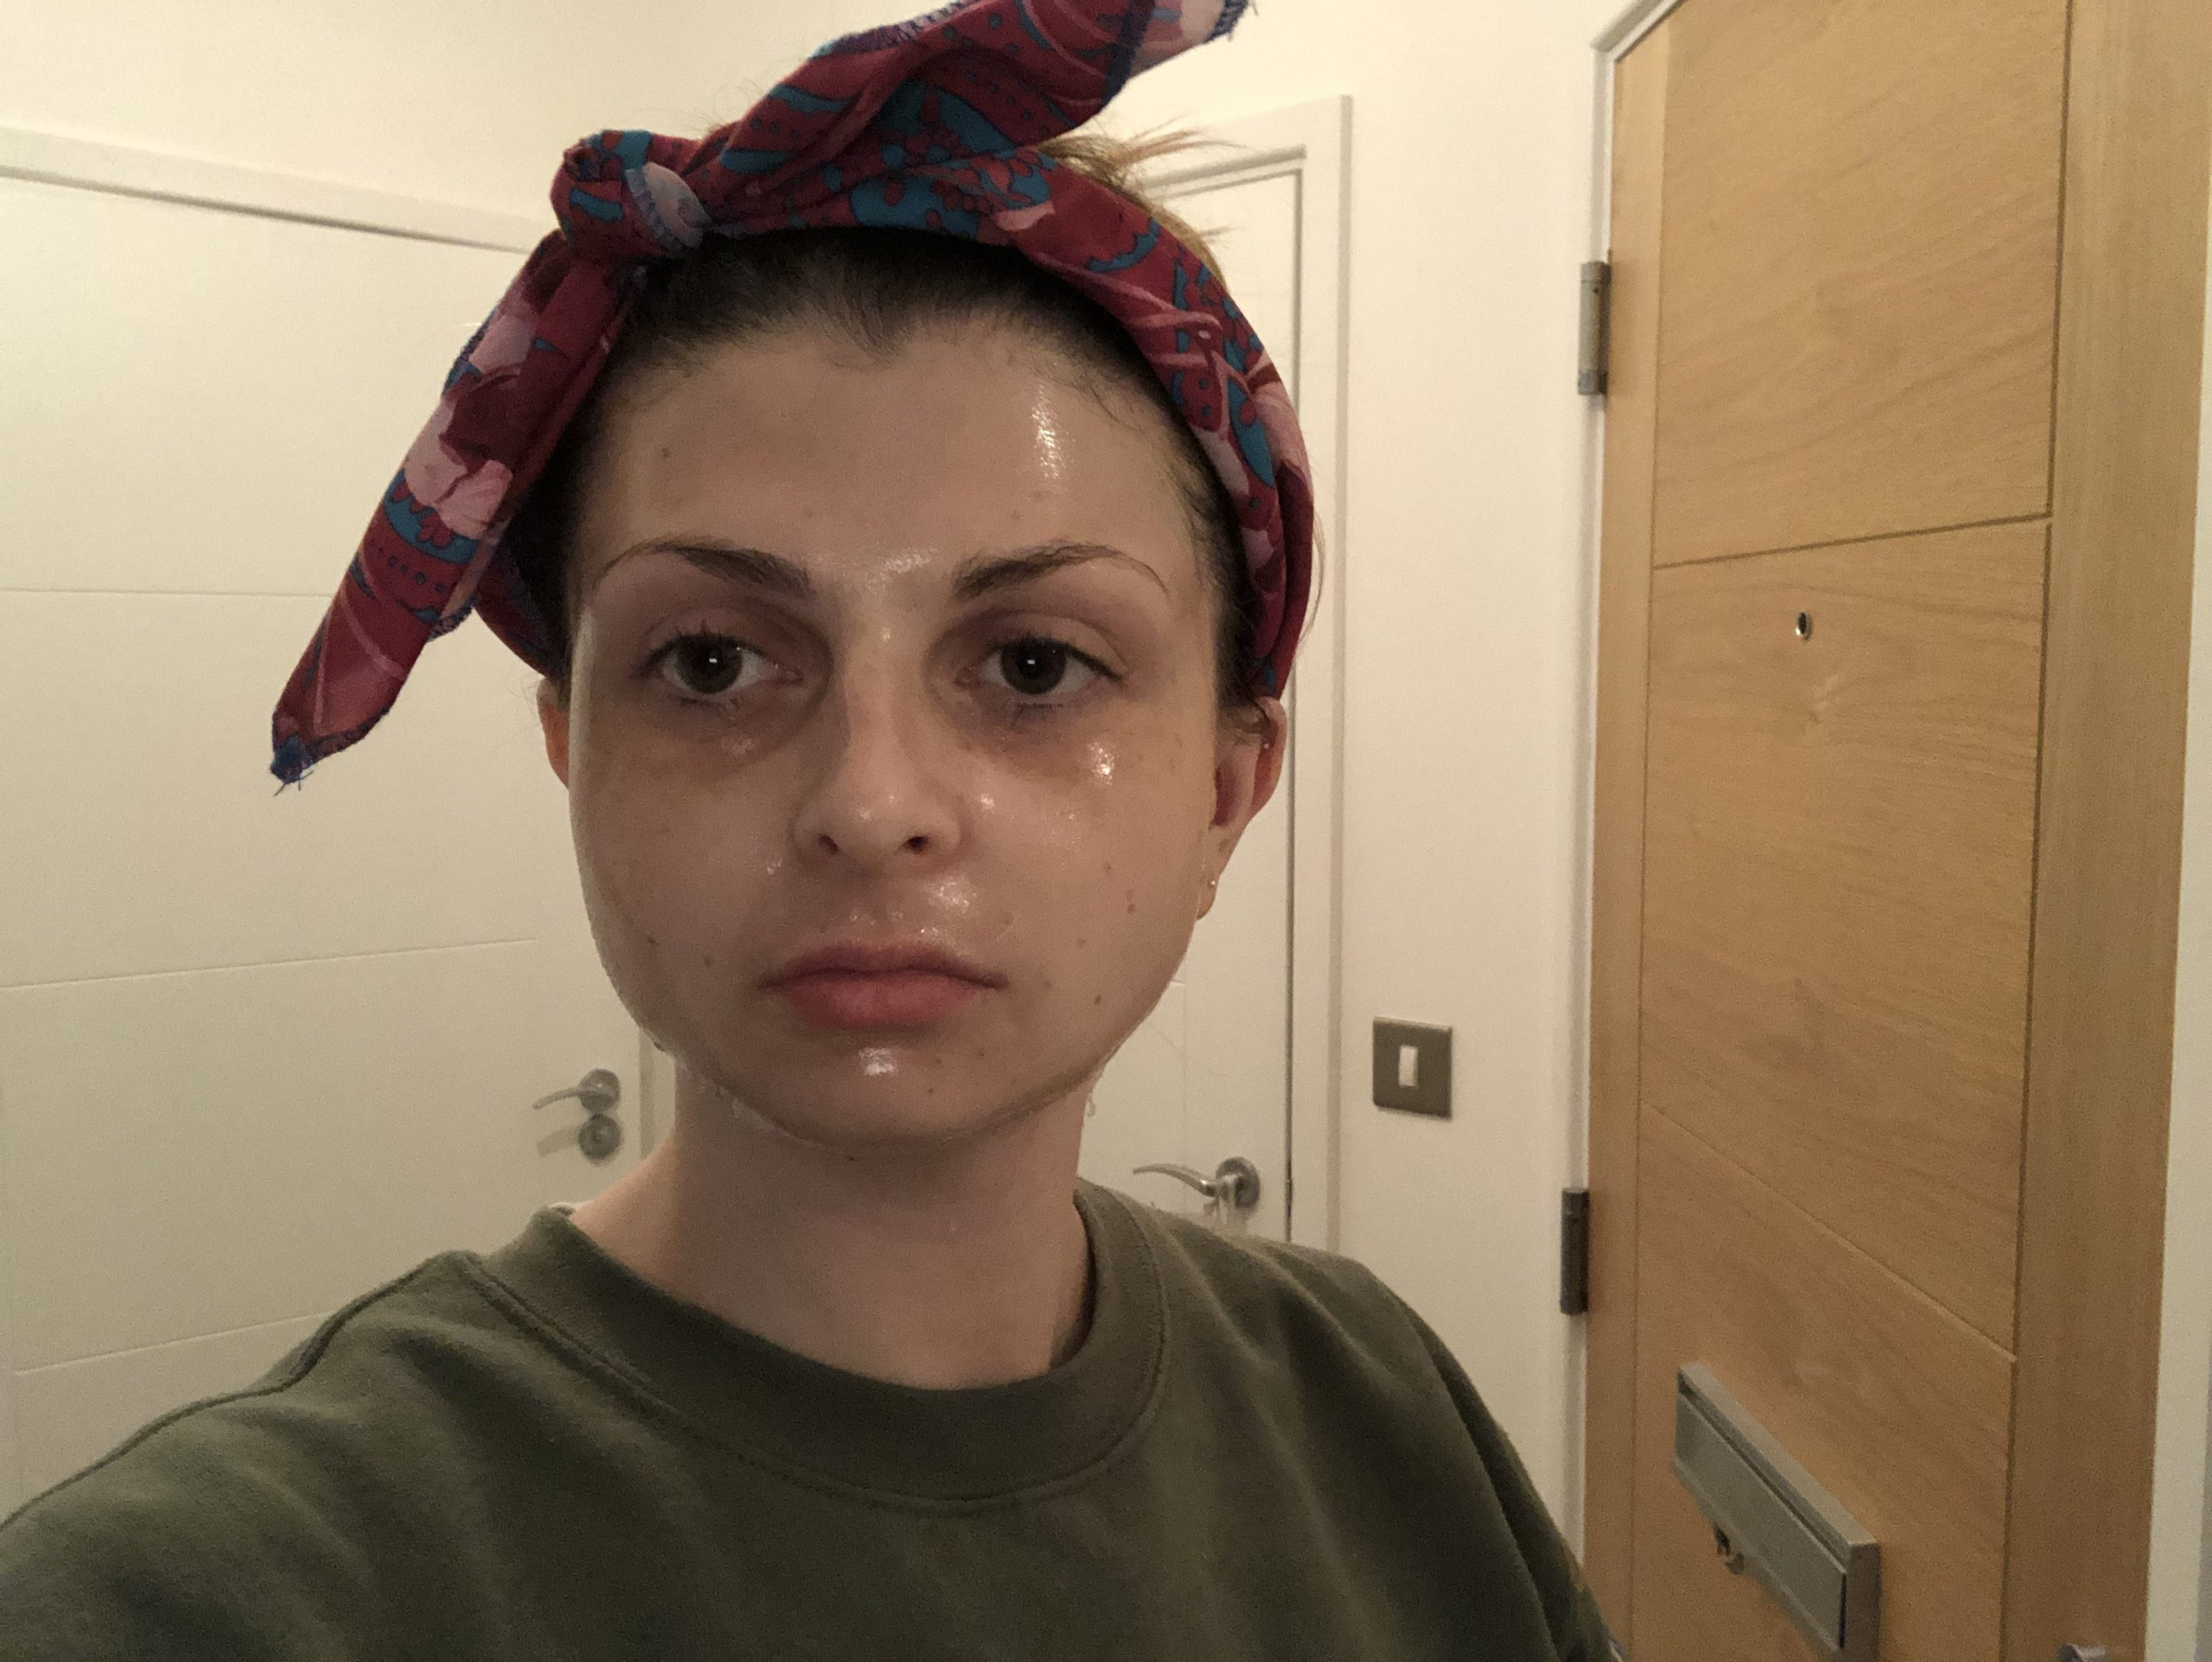 peel-off mask